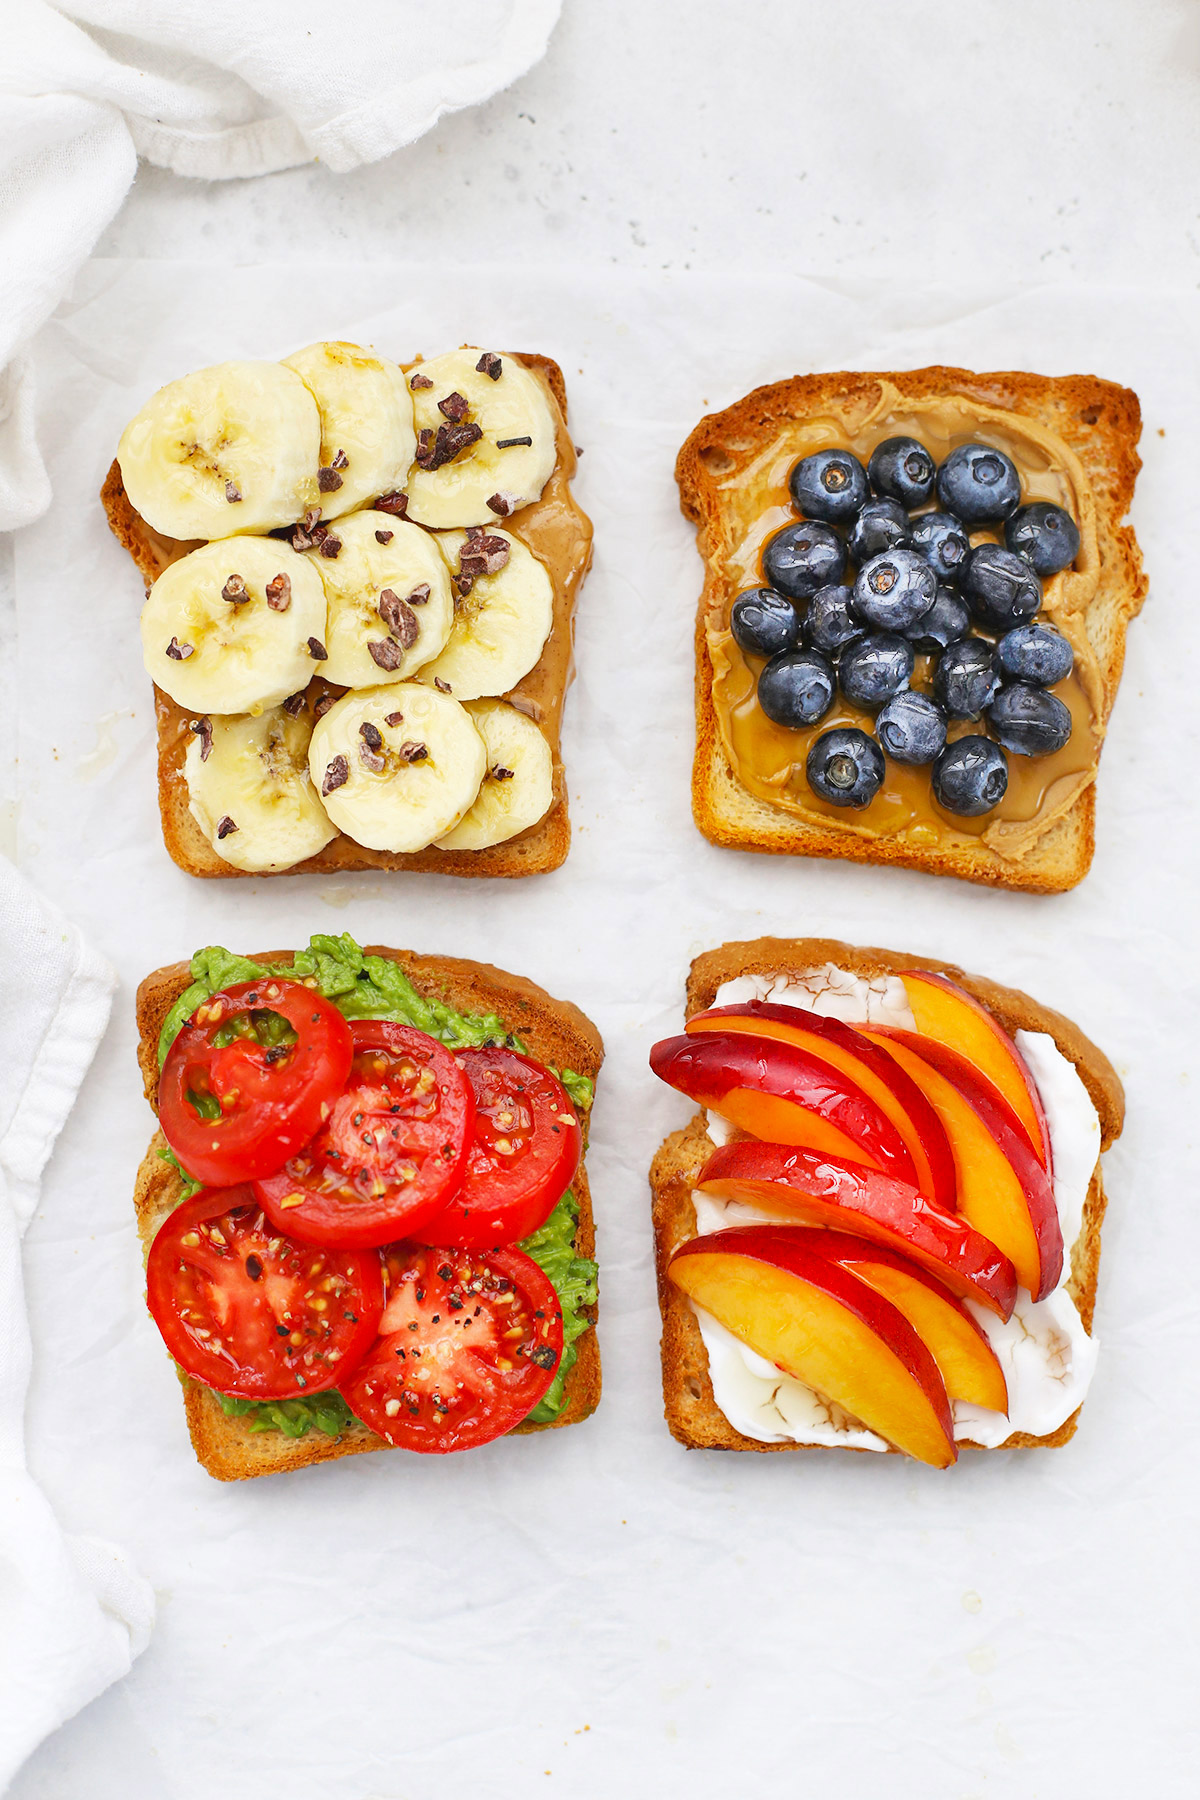 Four slices of gluten-free toast with different toppings on a white background.